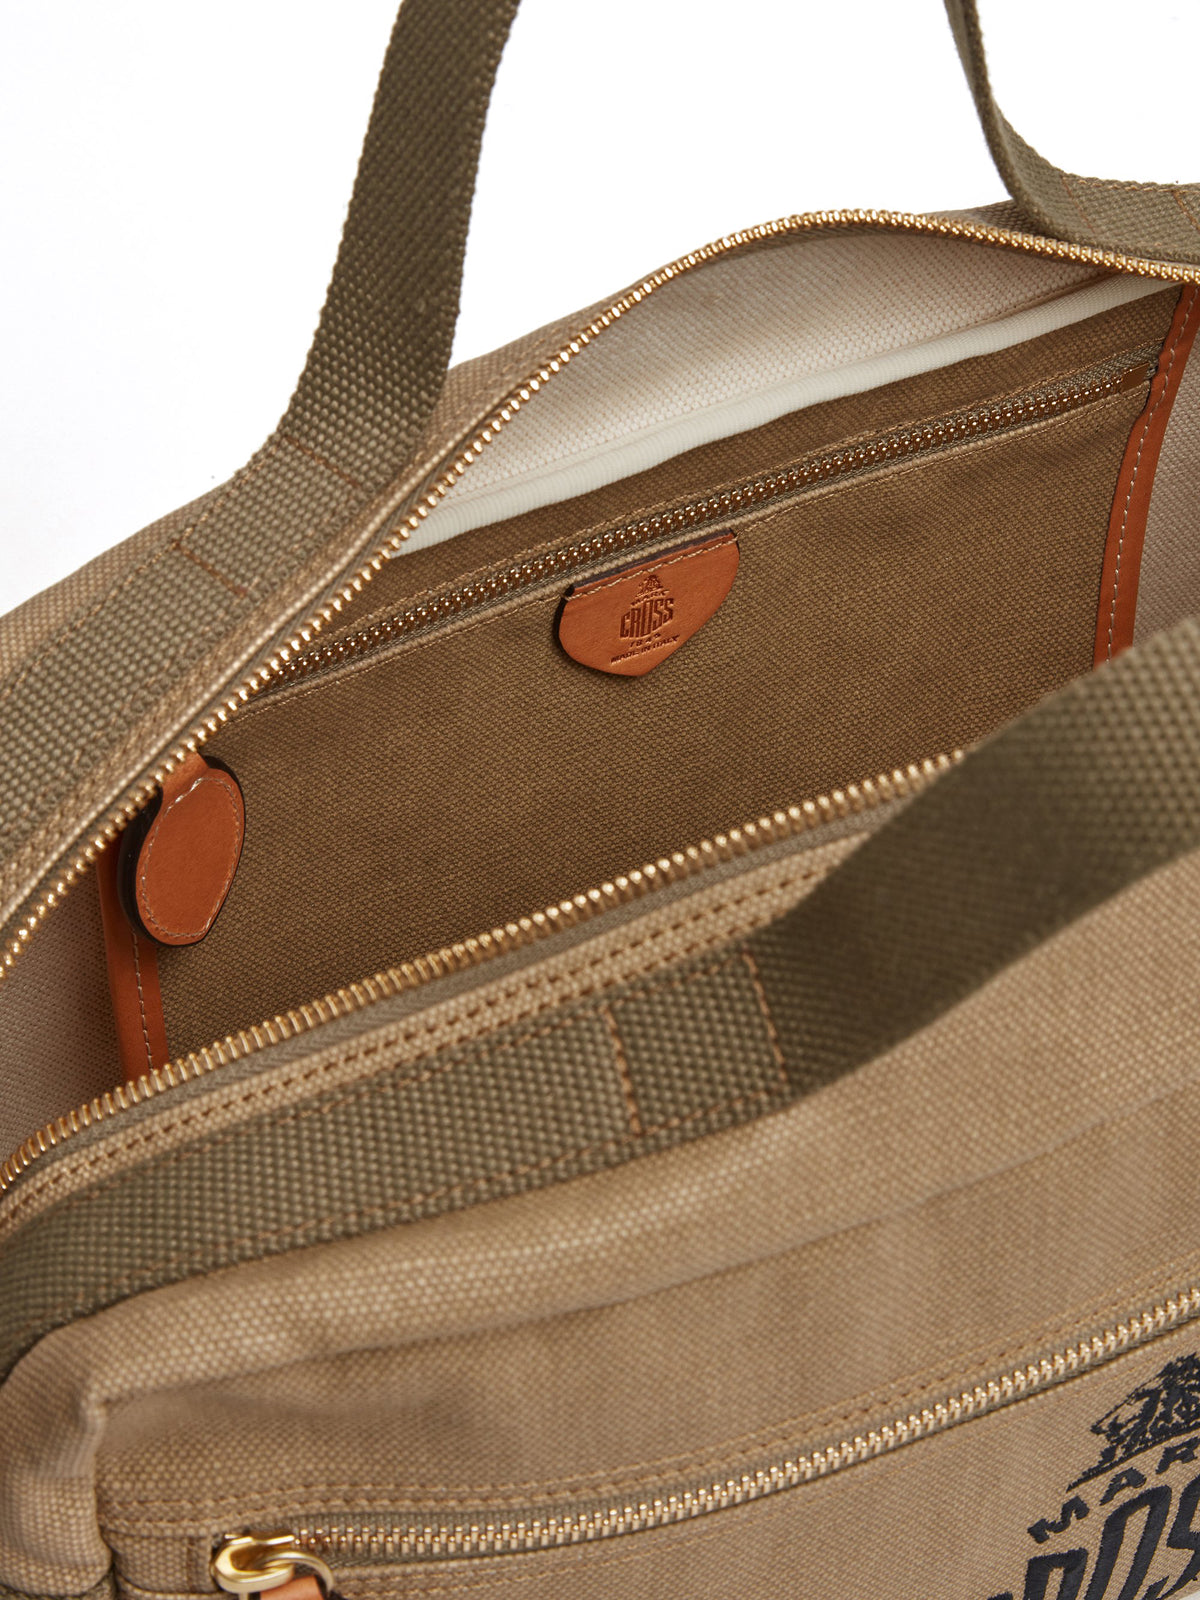 Mark Cross Weatherbird Canvas Messenger Bag Canvas Beige Interior